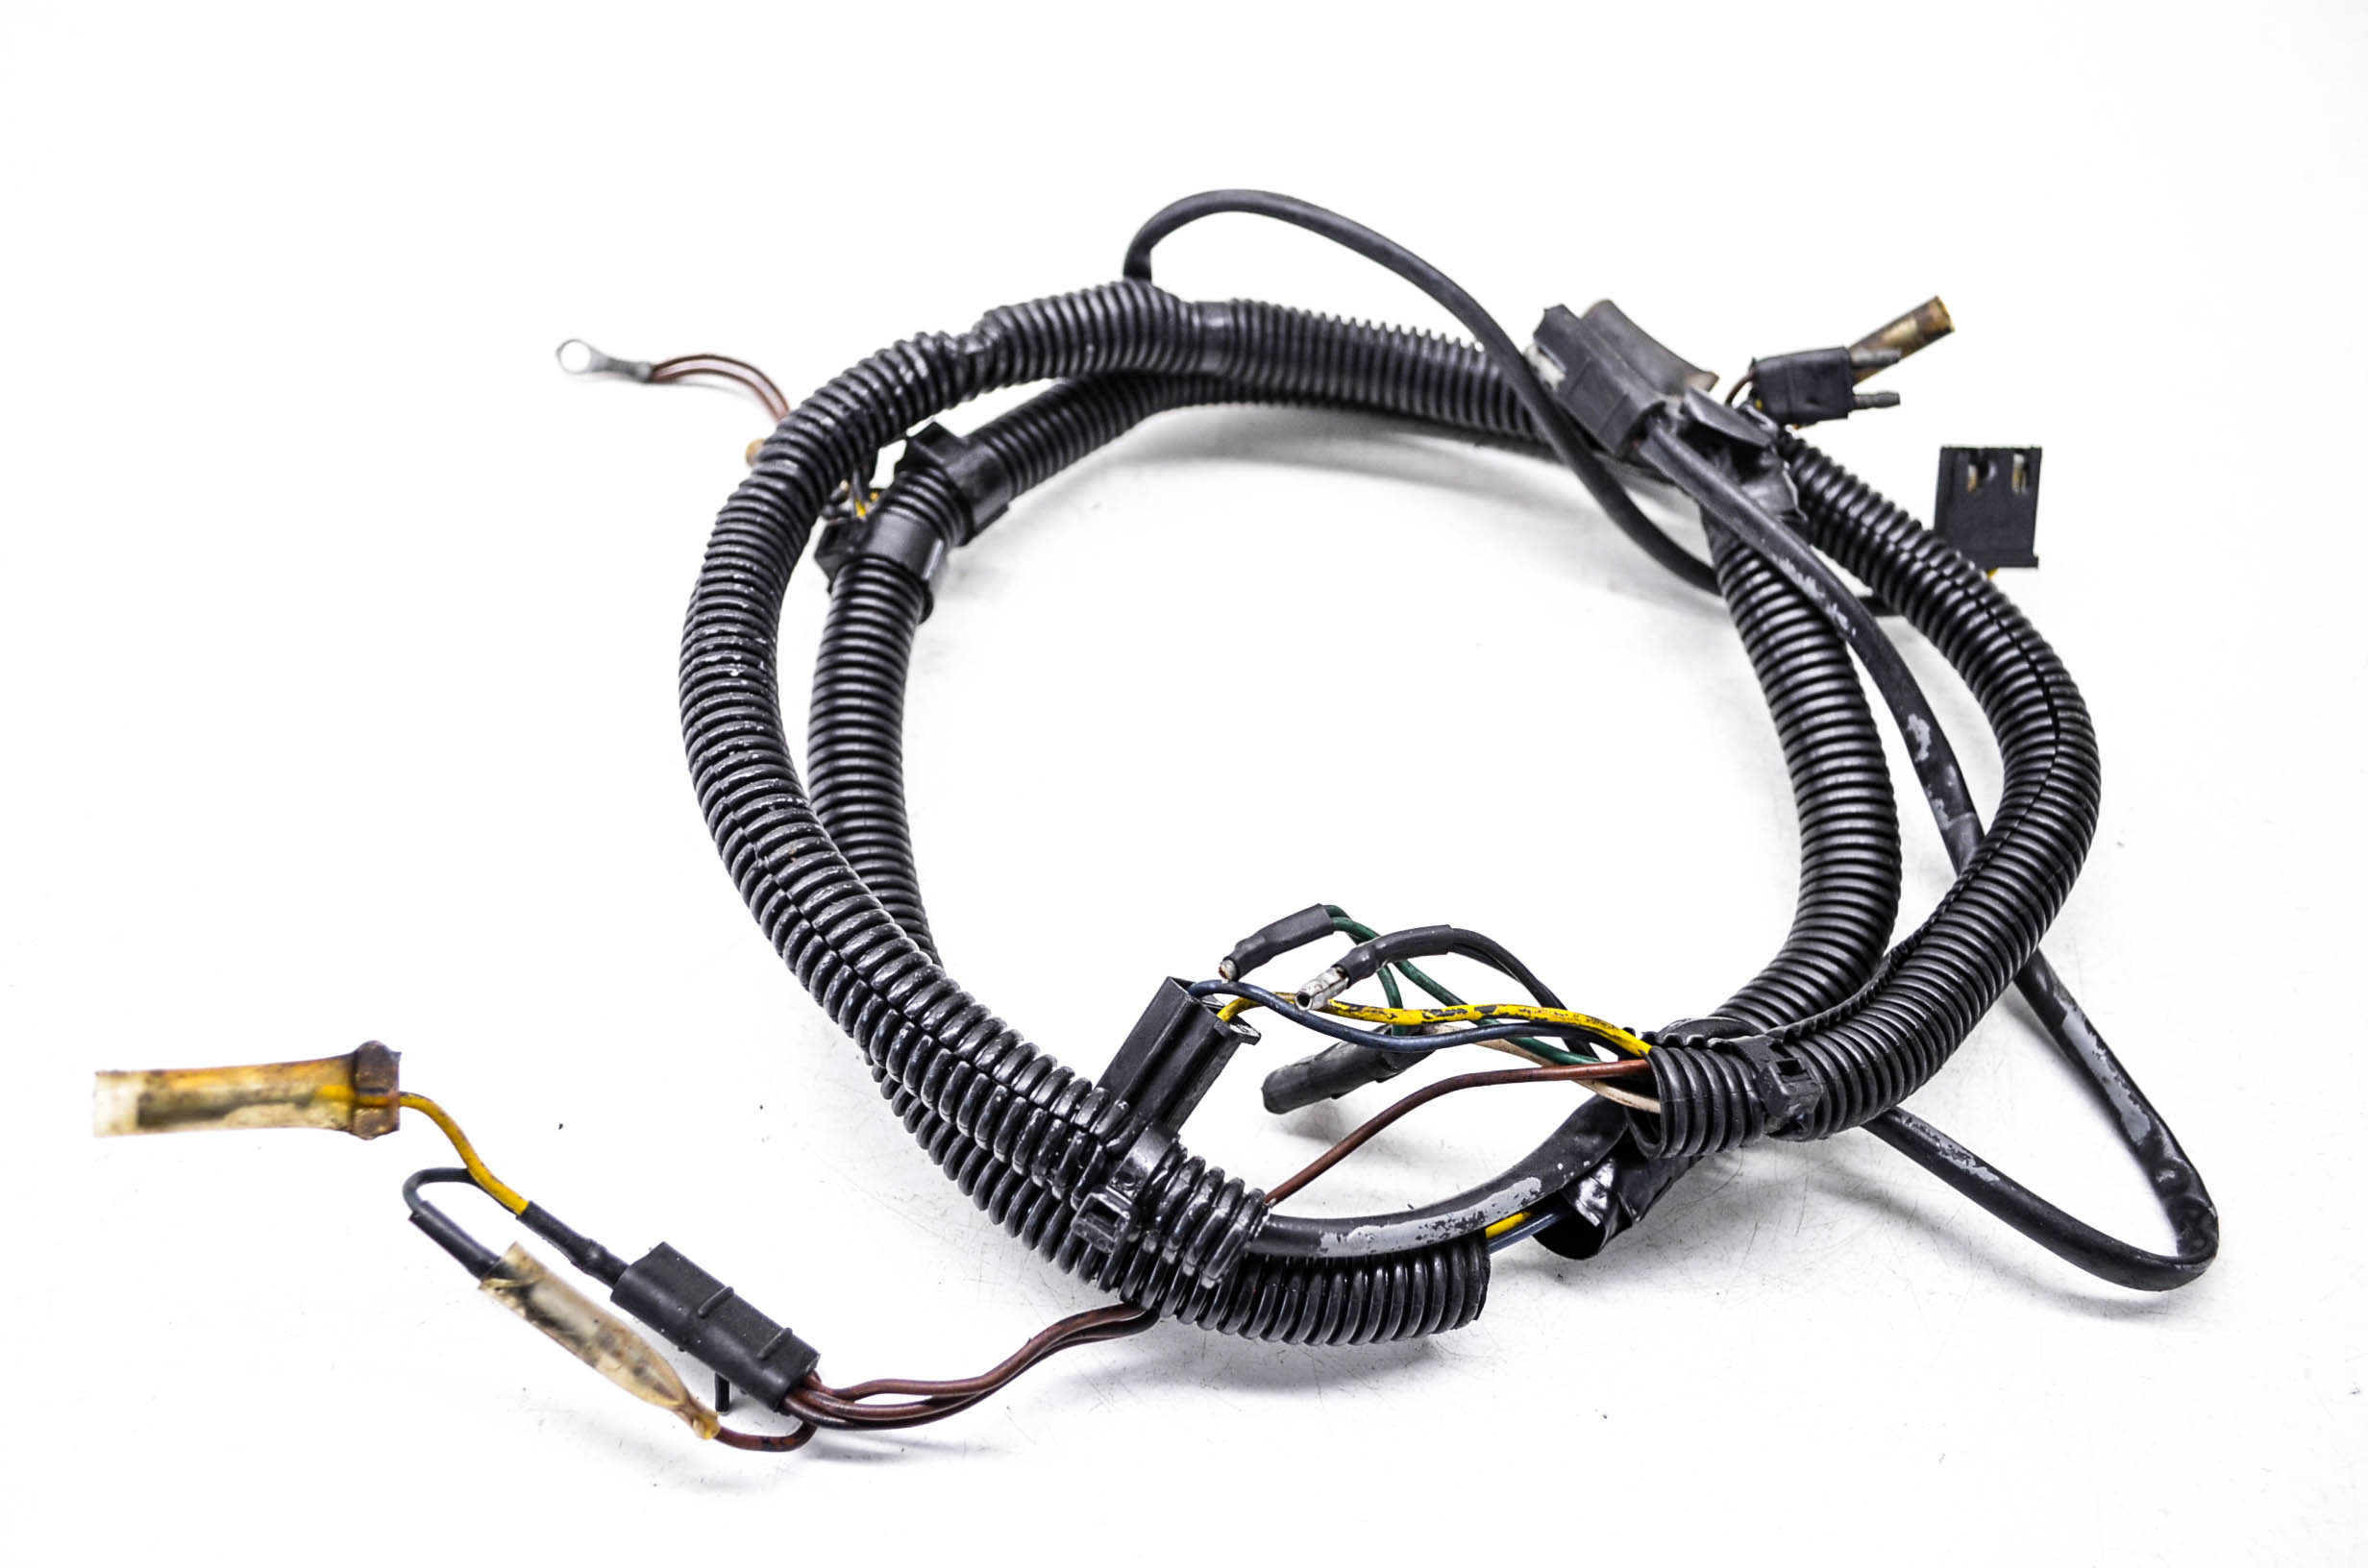 87 Polaris Cyclone 250 2x4 Wire Harness Electrical Wiring